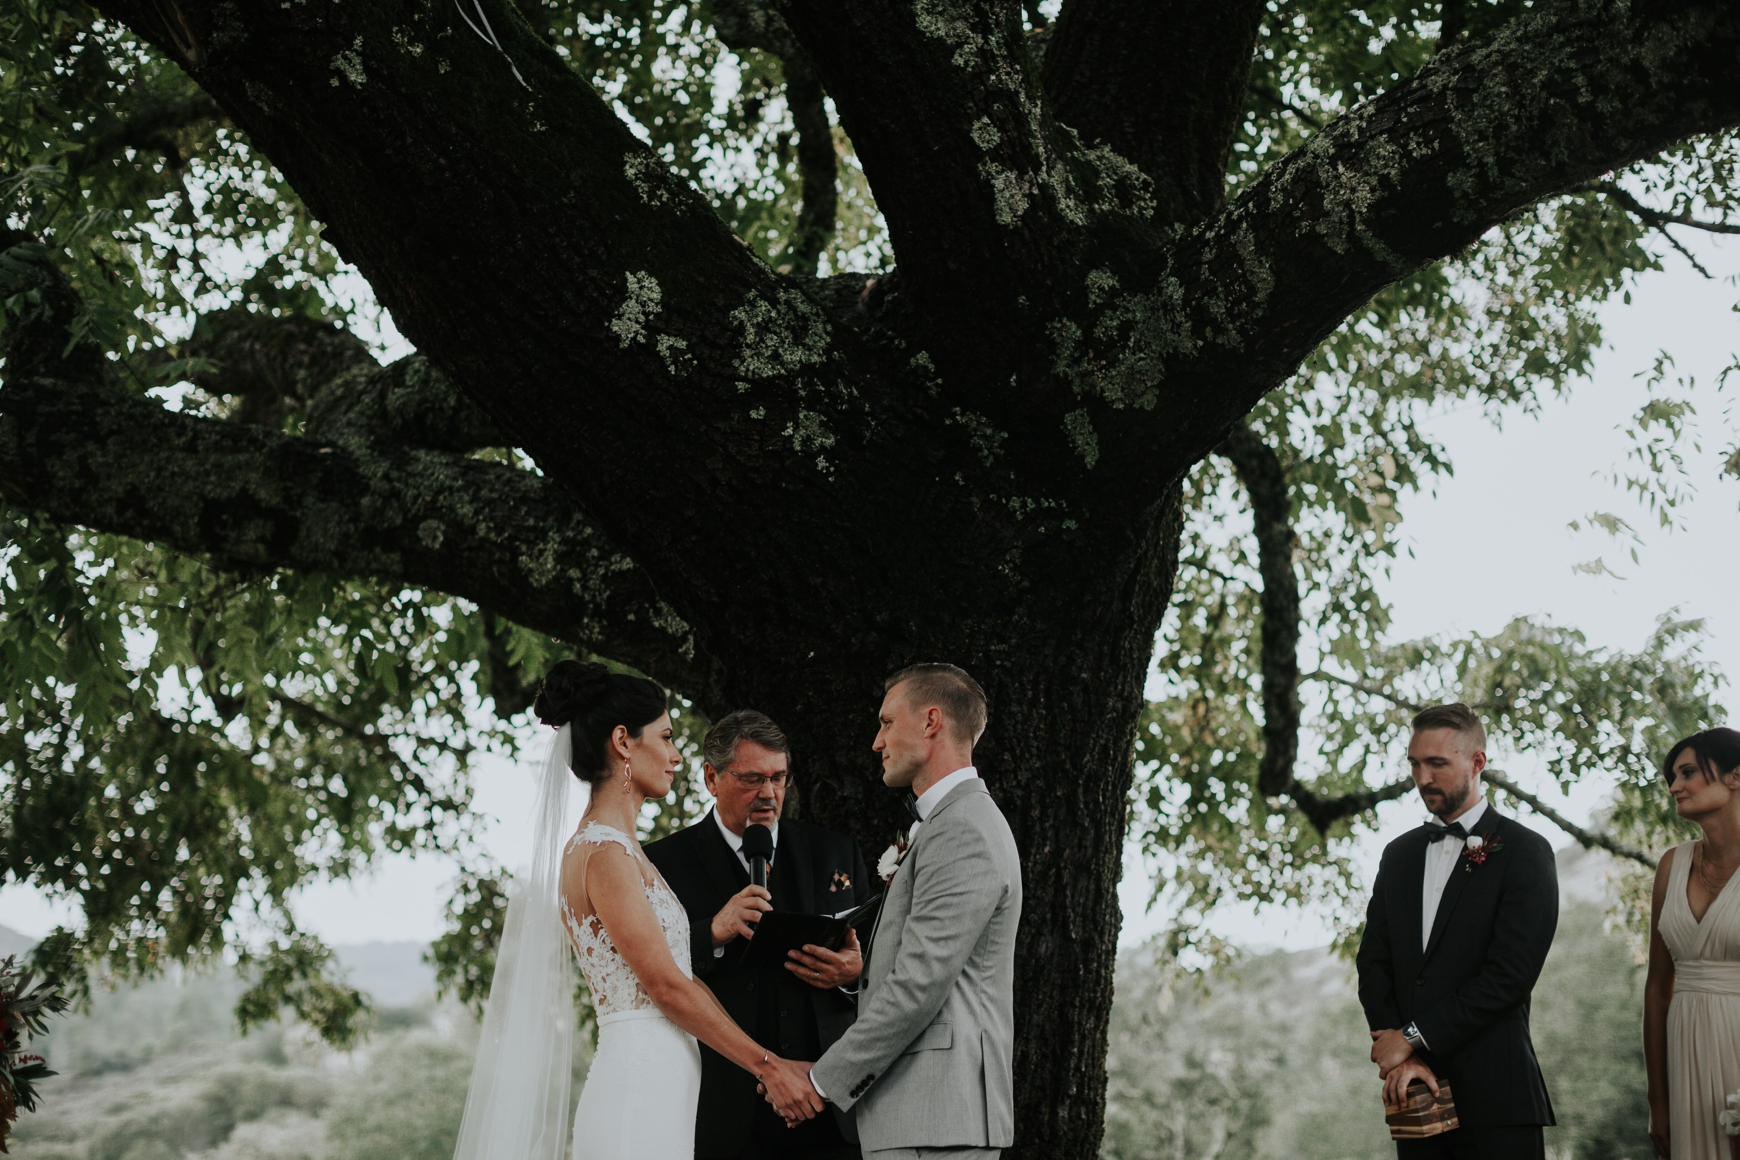 SSS Ranch Wedding Chiara & Jacques Emily Magers Photography-715.jpg